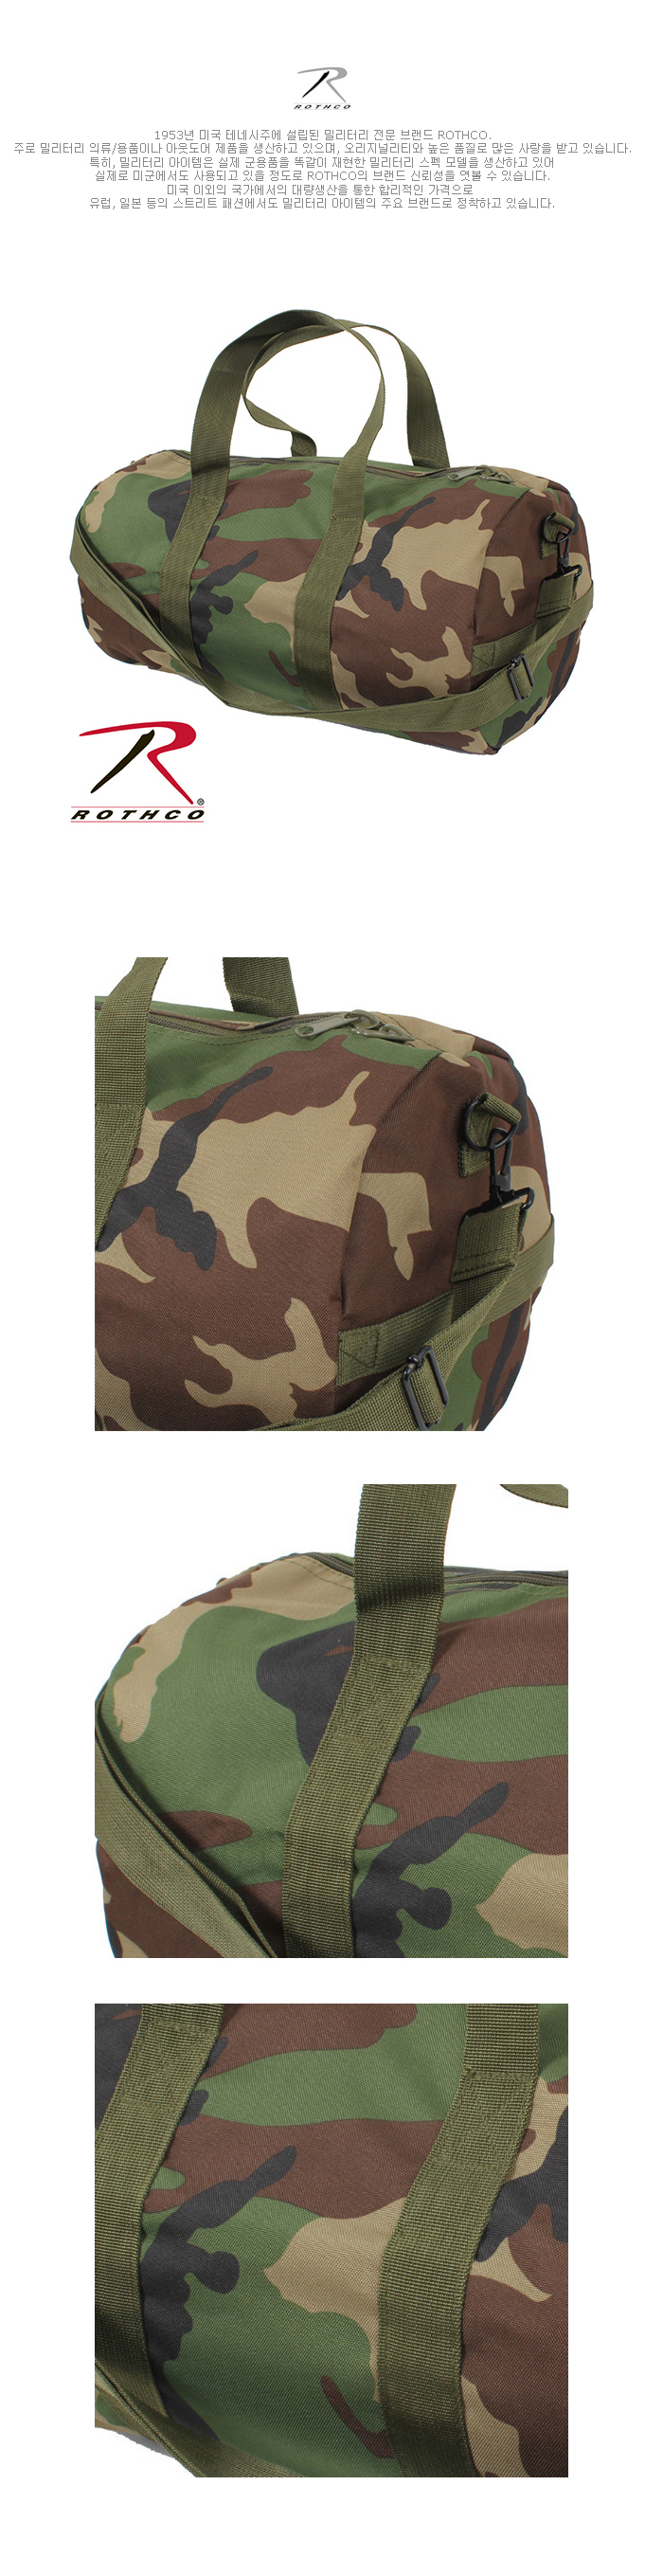 88555 WOODLAND CAMO SHOULDER BAG